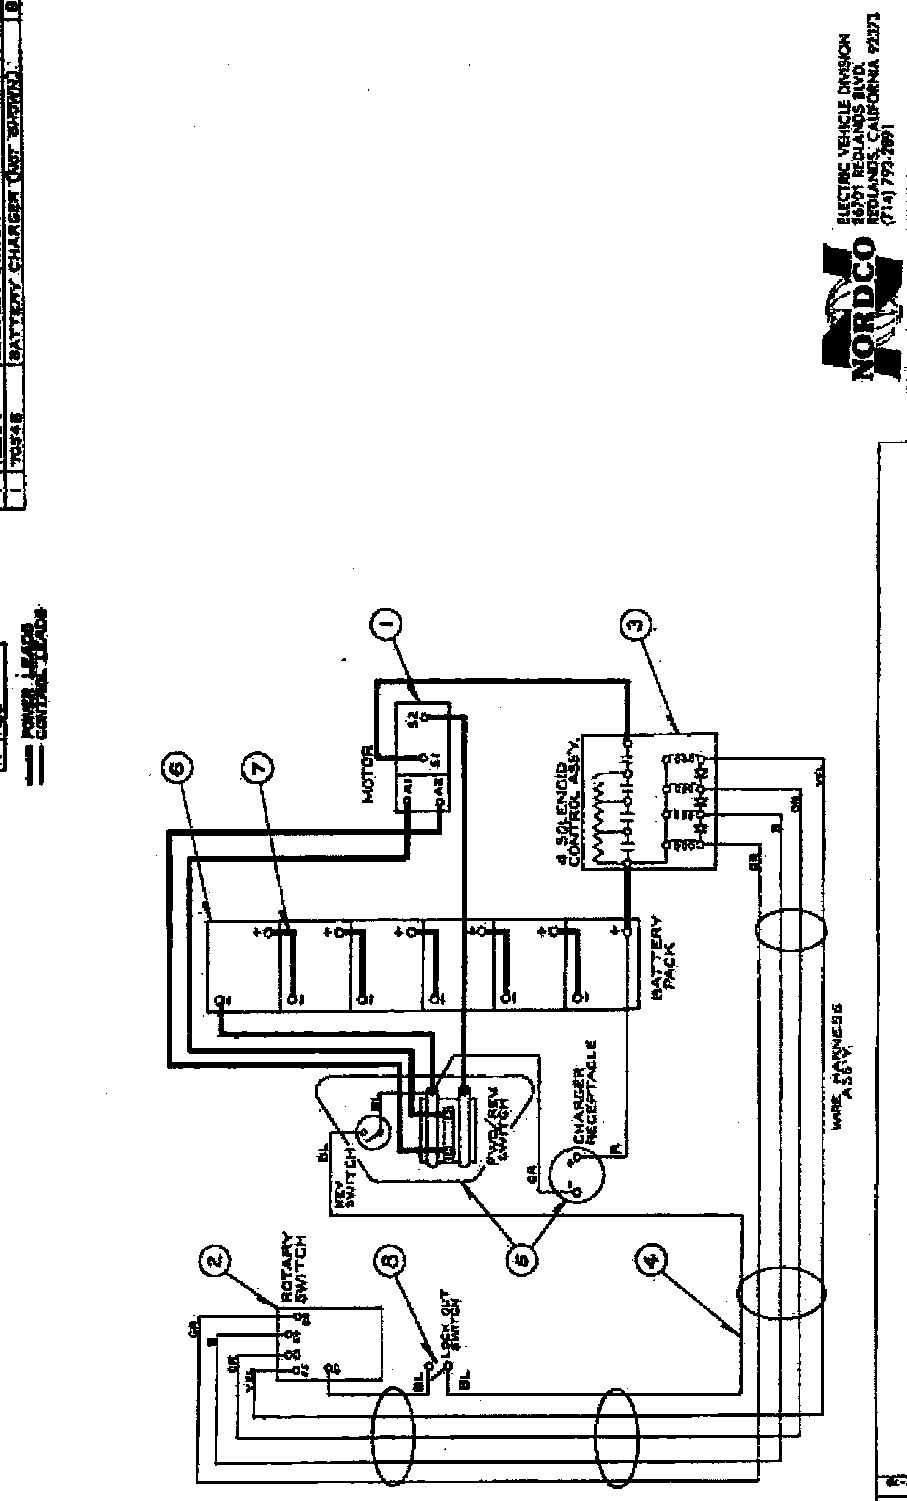 Westinghouse Golf Cart Wiring Diagram Trusted Diagrams Taylor Dunn Battery Marketeer 1965 78 Models 436 437 438 Beautiful